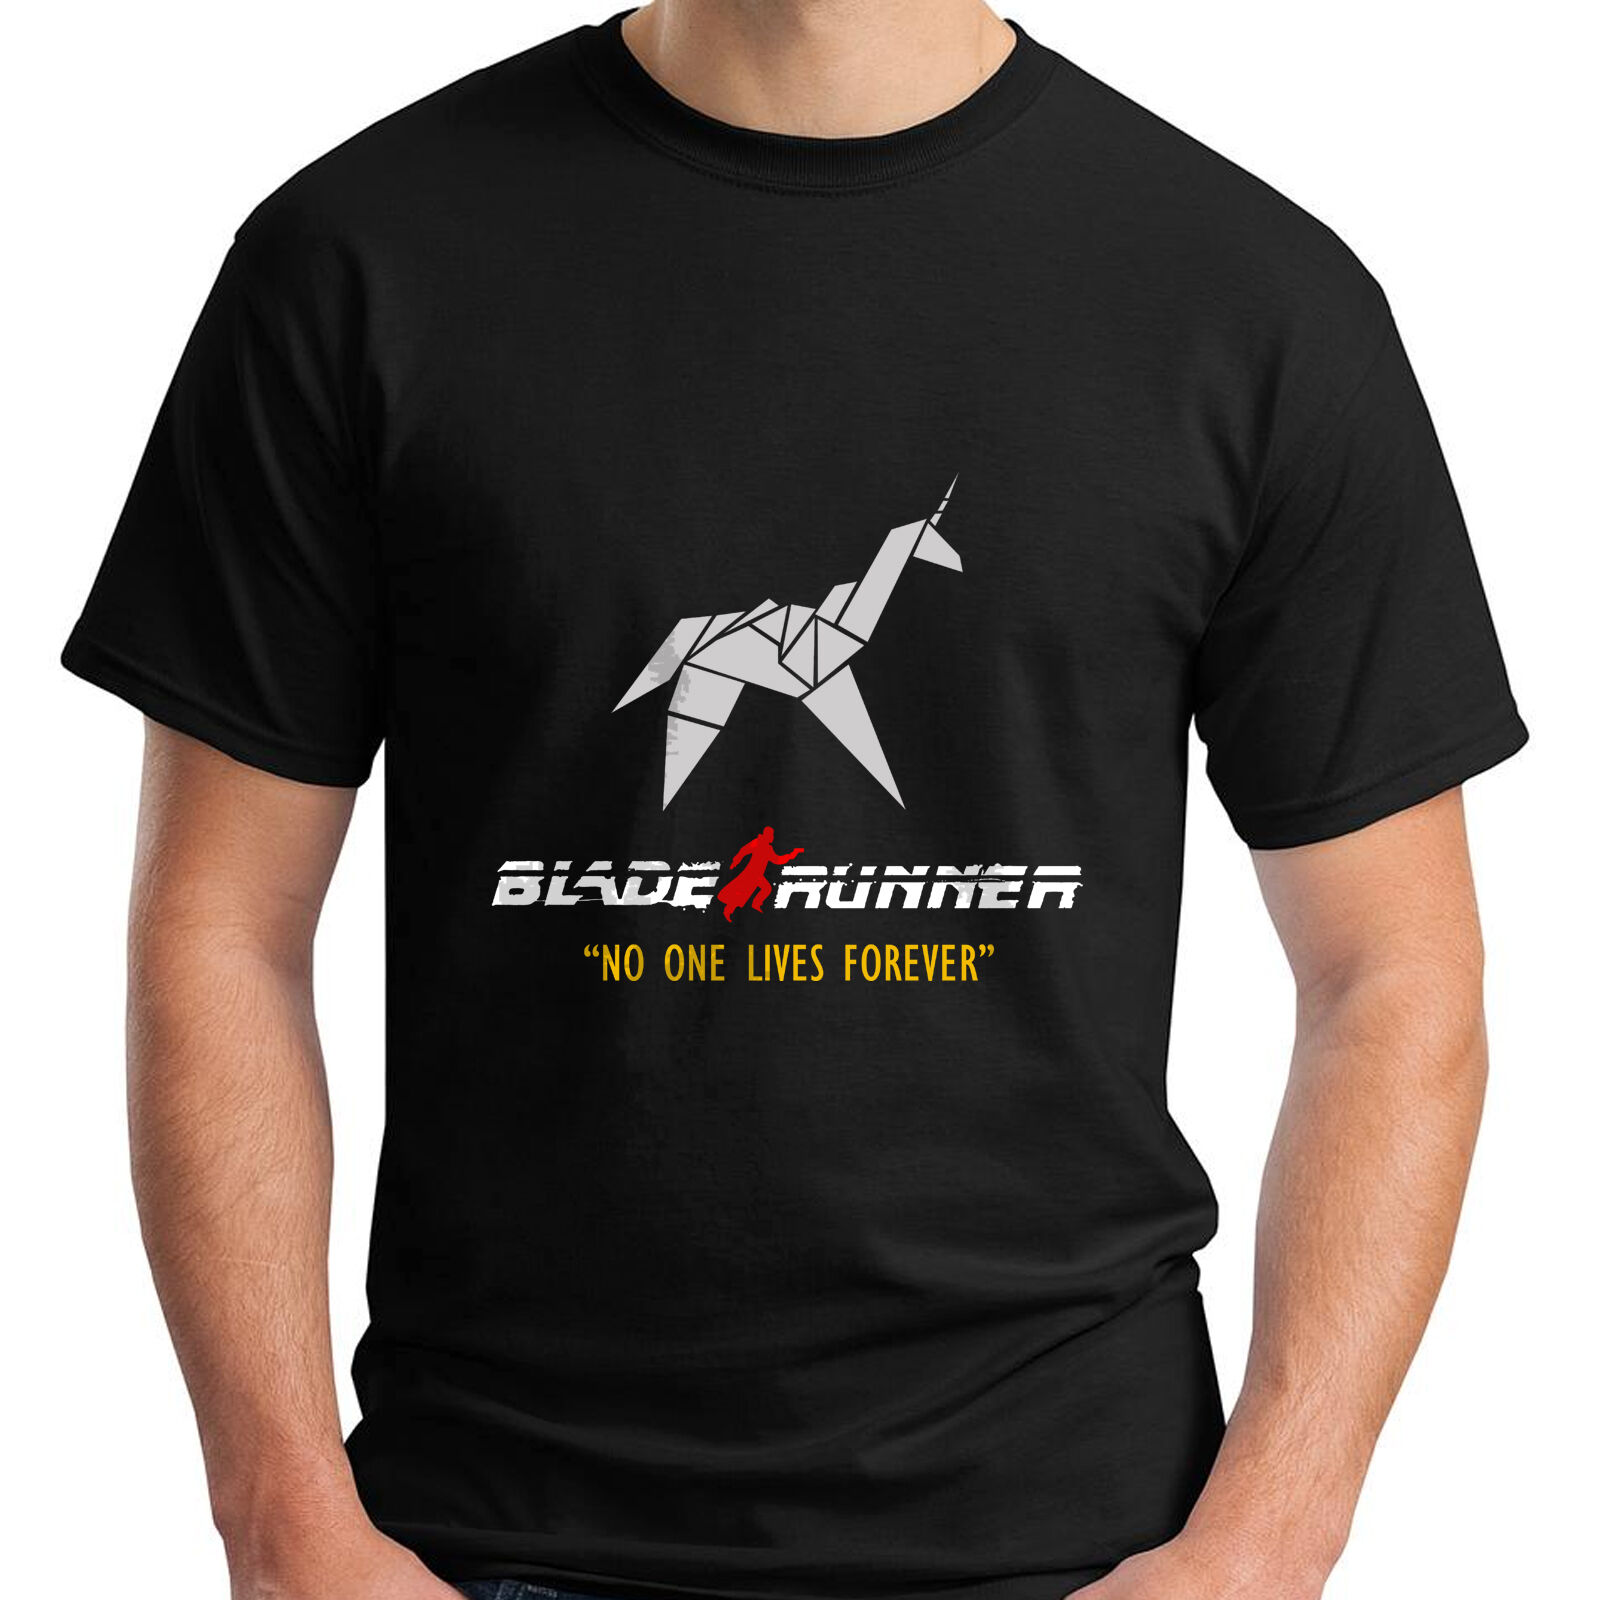 New BLADE RUNNER ORIGAMI UNICORN - Retro 80's Classic SCI FI Movie T-Shirt s-3xl O-Neck T Shirt Harajuku Tops Tees image